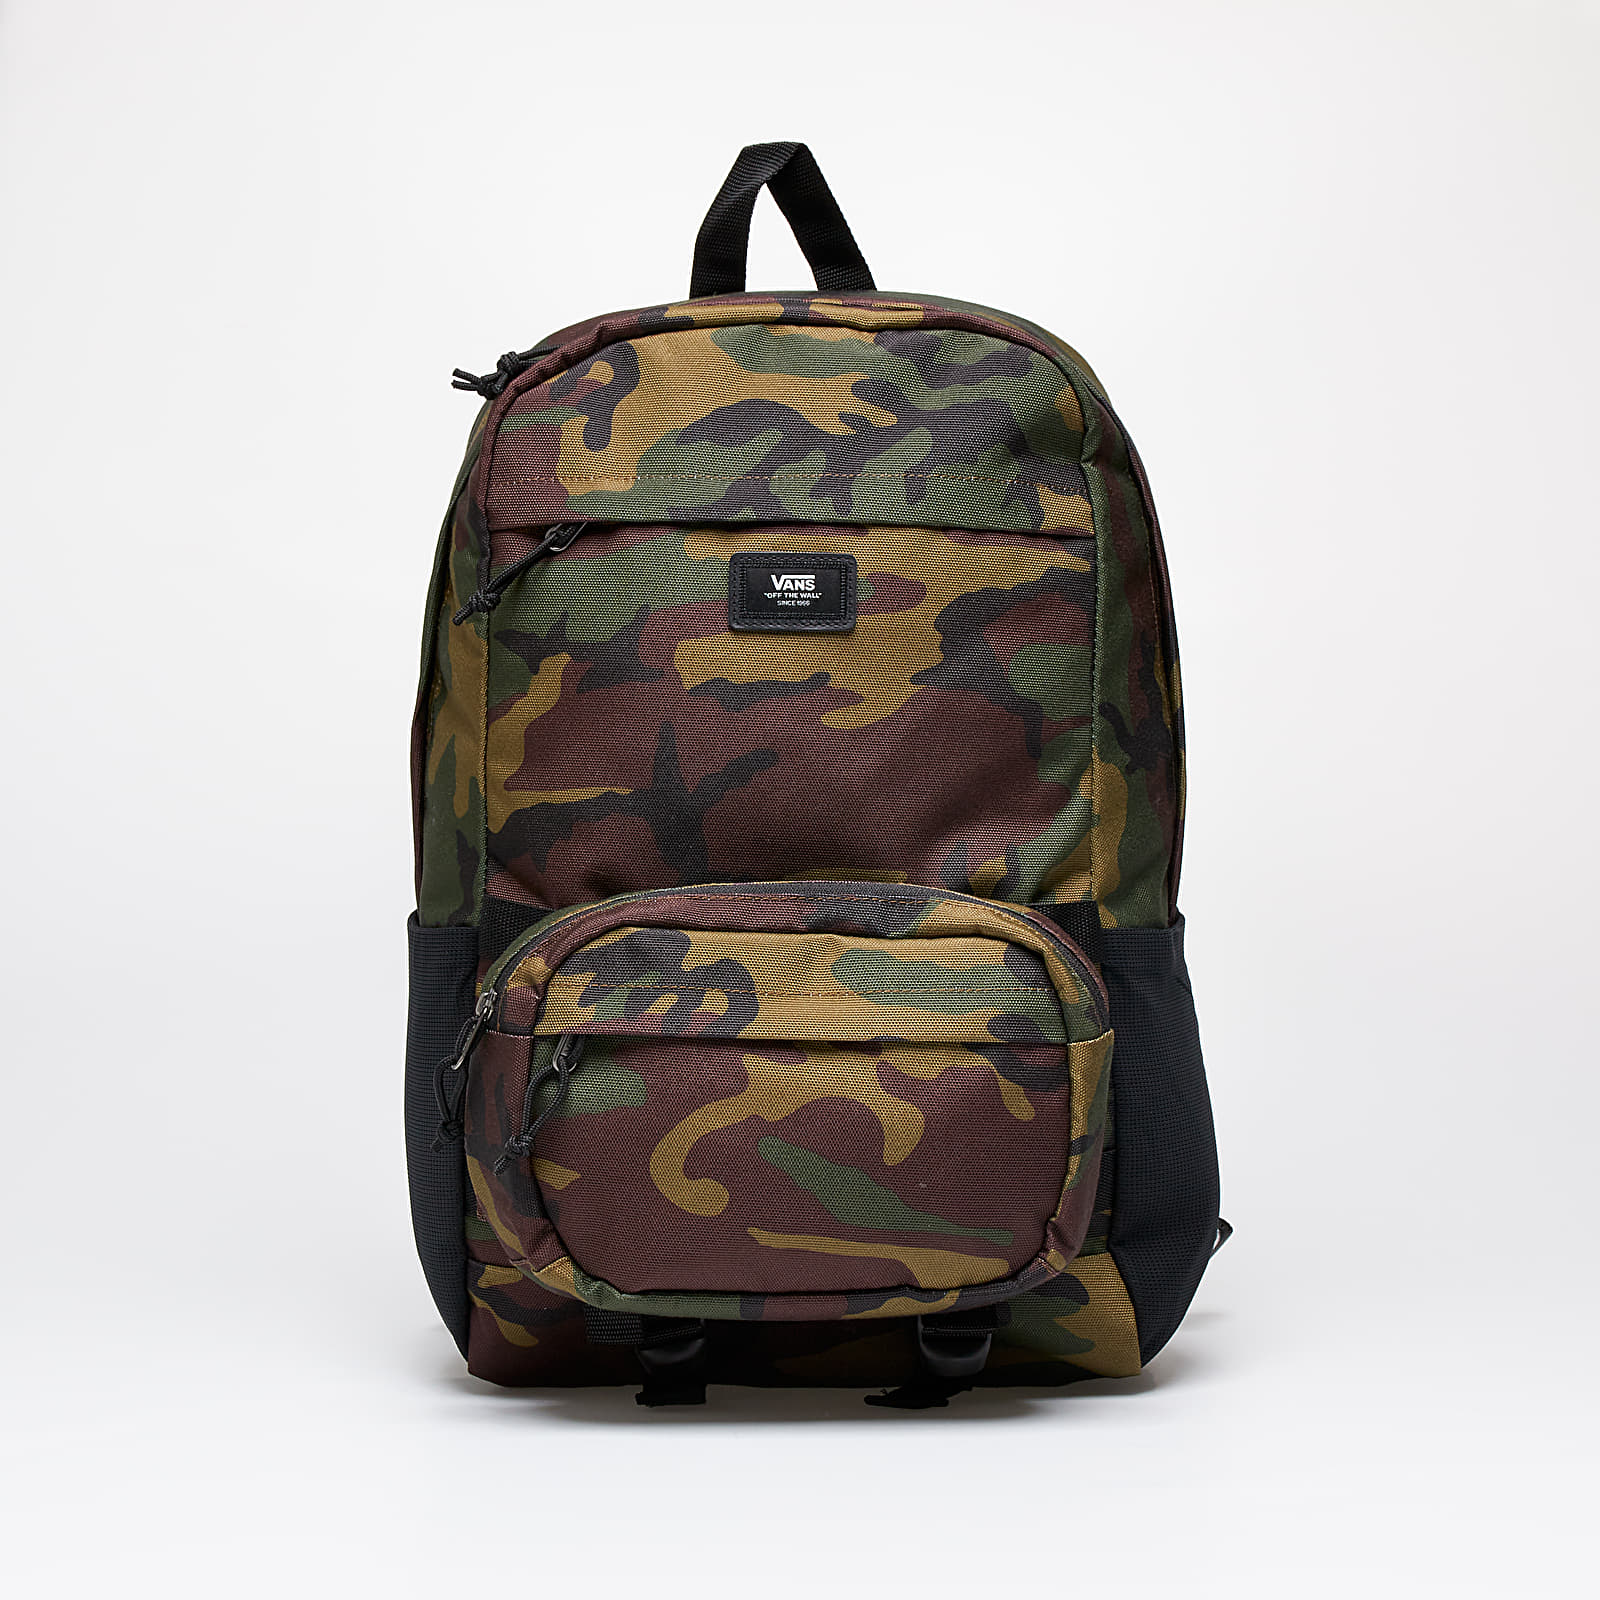 Vans Transplant Backpack